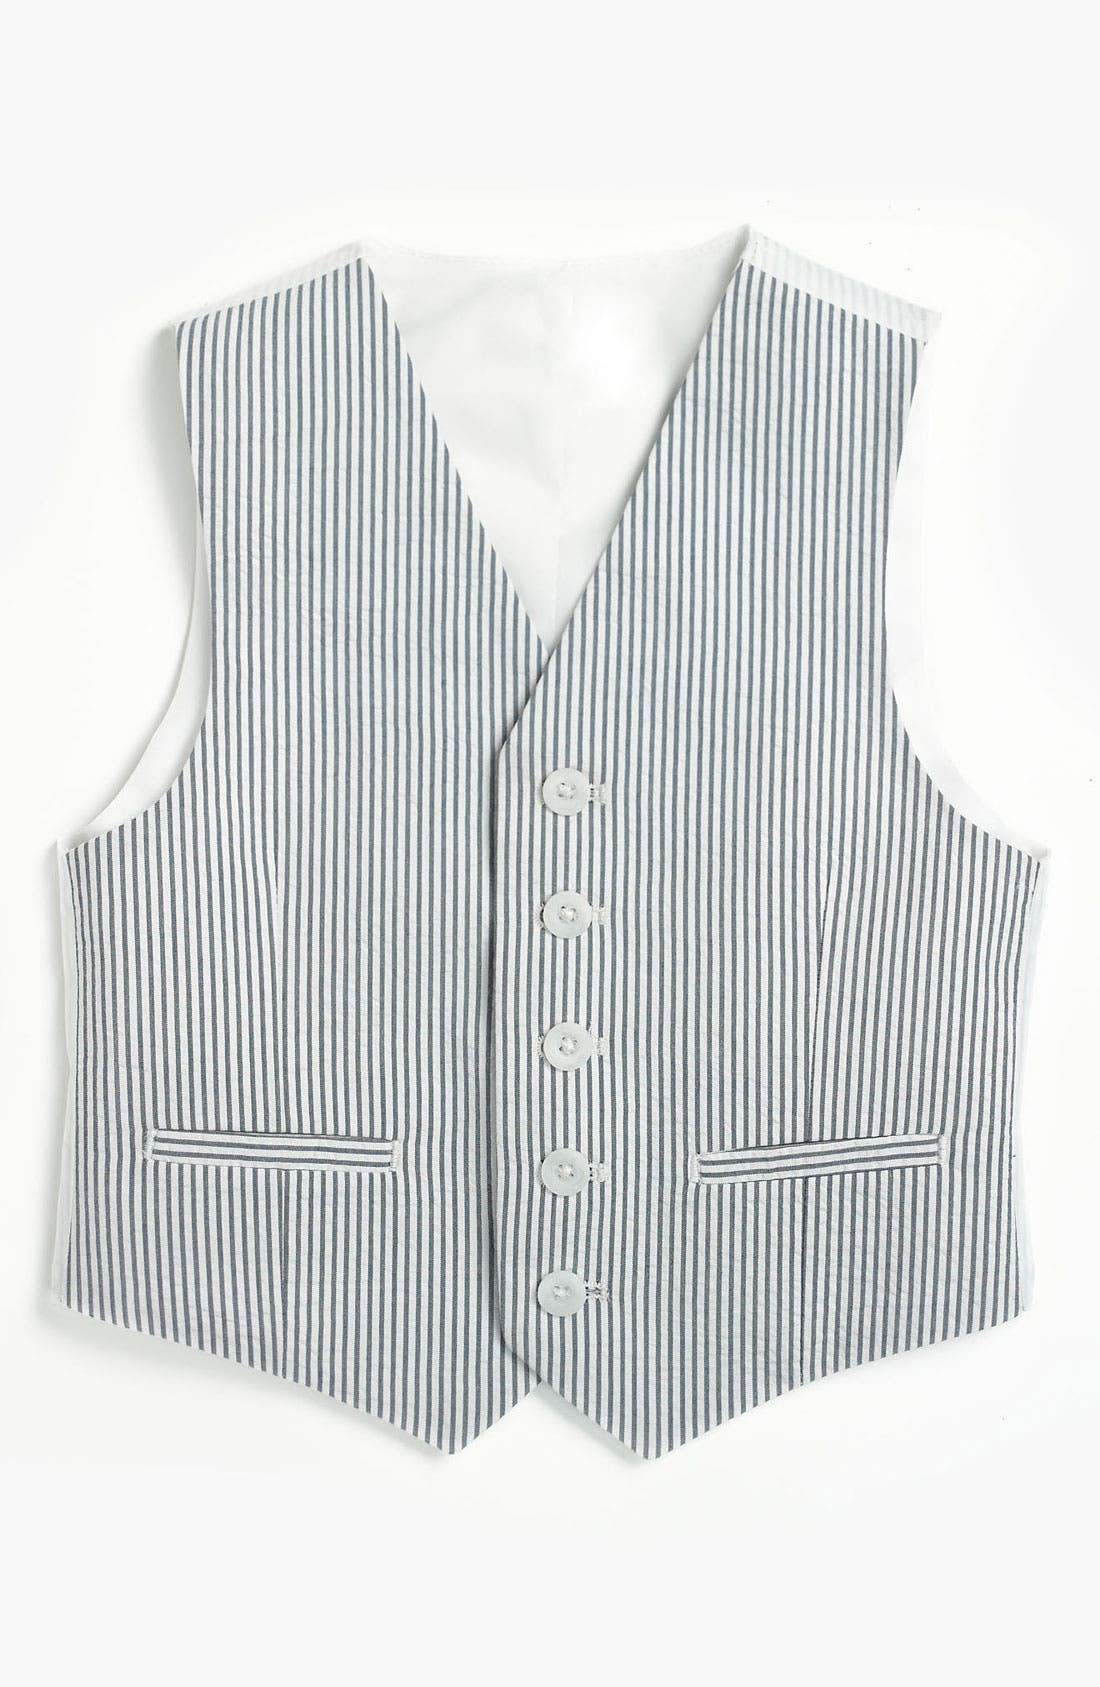 Alternate Image 1 Selected - Nordstrom 'Andrew' Vest (Little Boys & Big Boys)